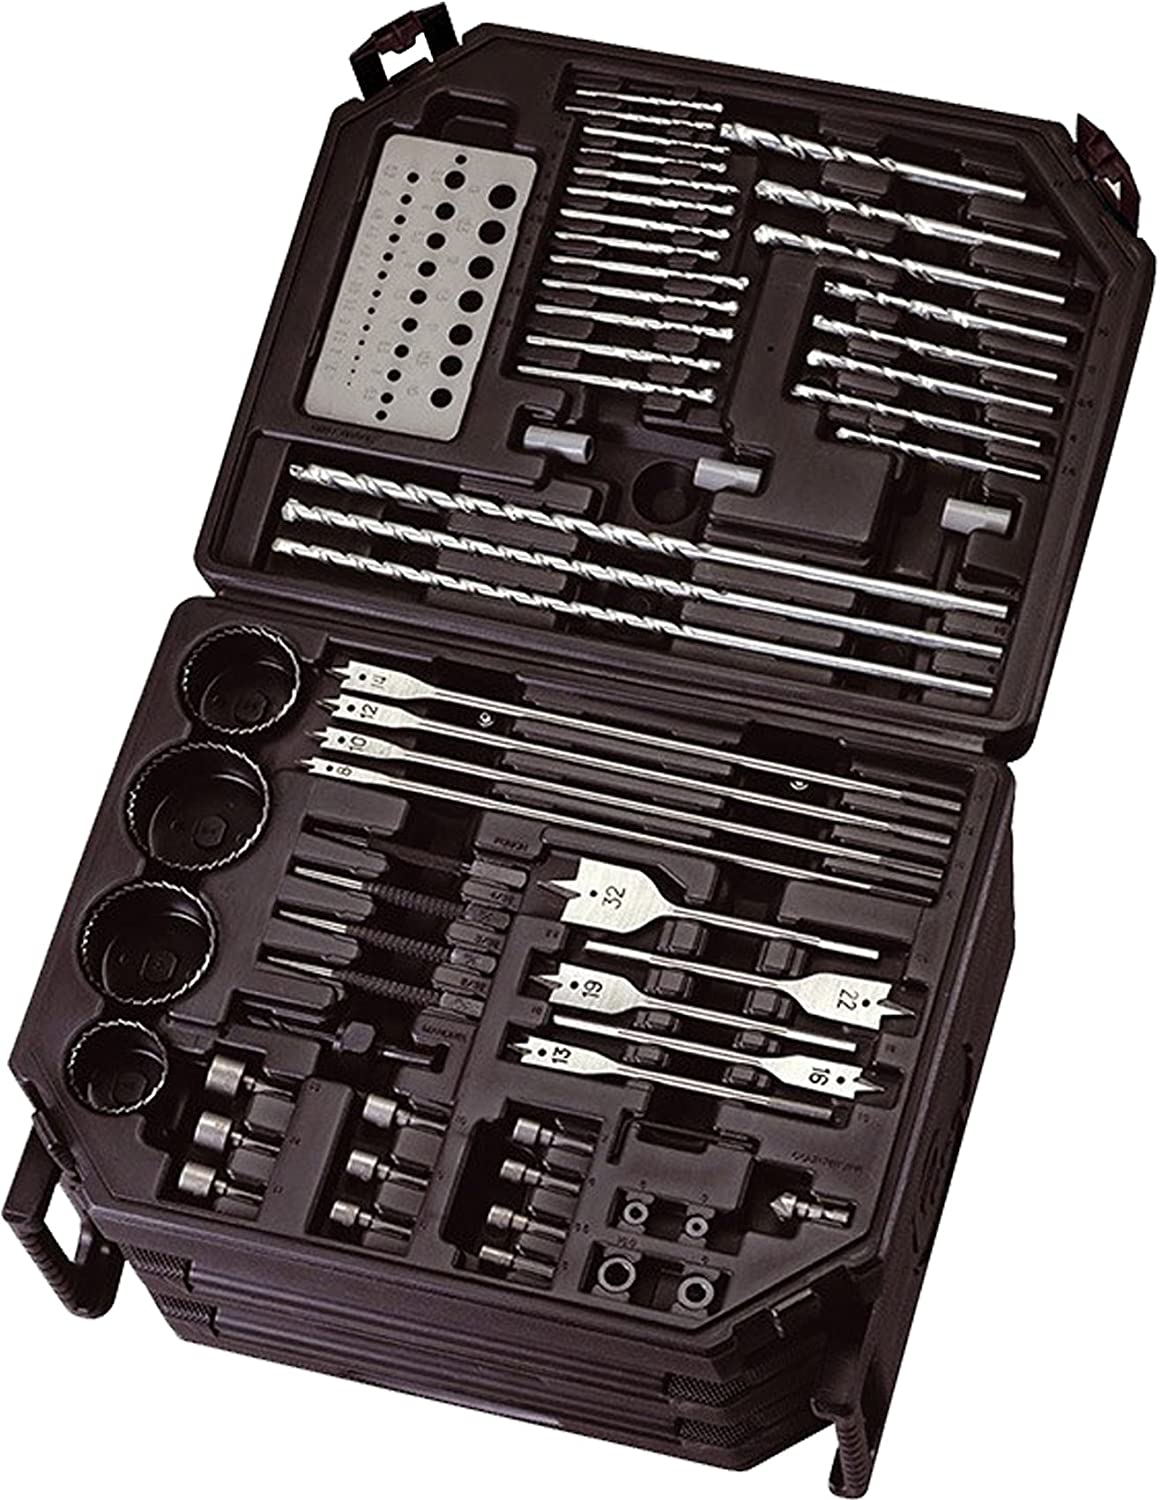 Lumberjack DBS300 Drill Driving Bit Accessory Set 300 Piece with Case